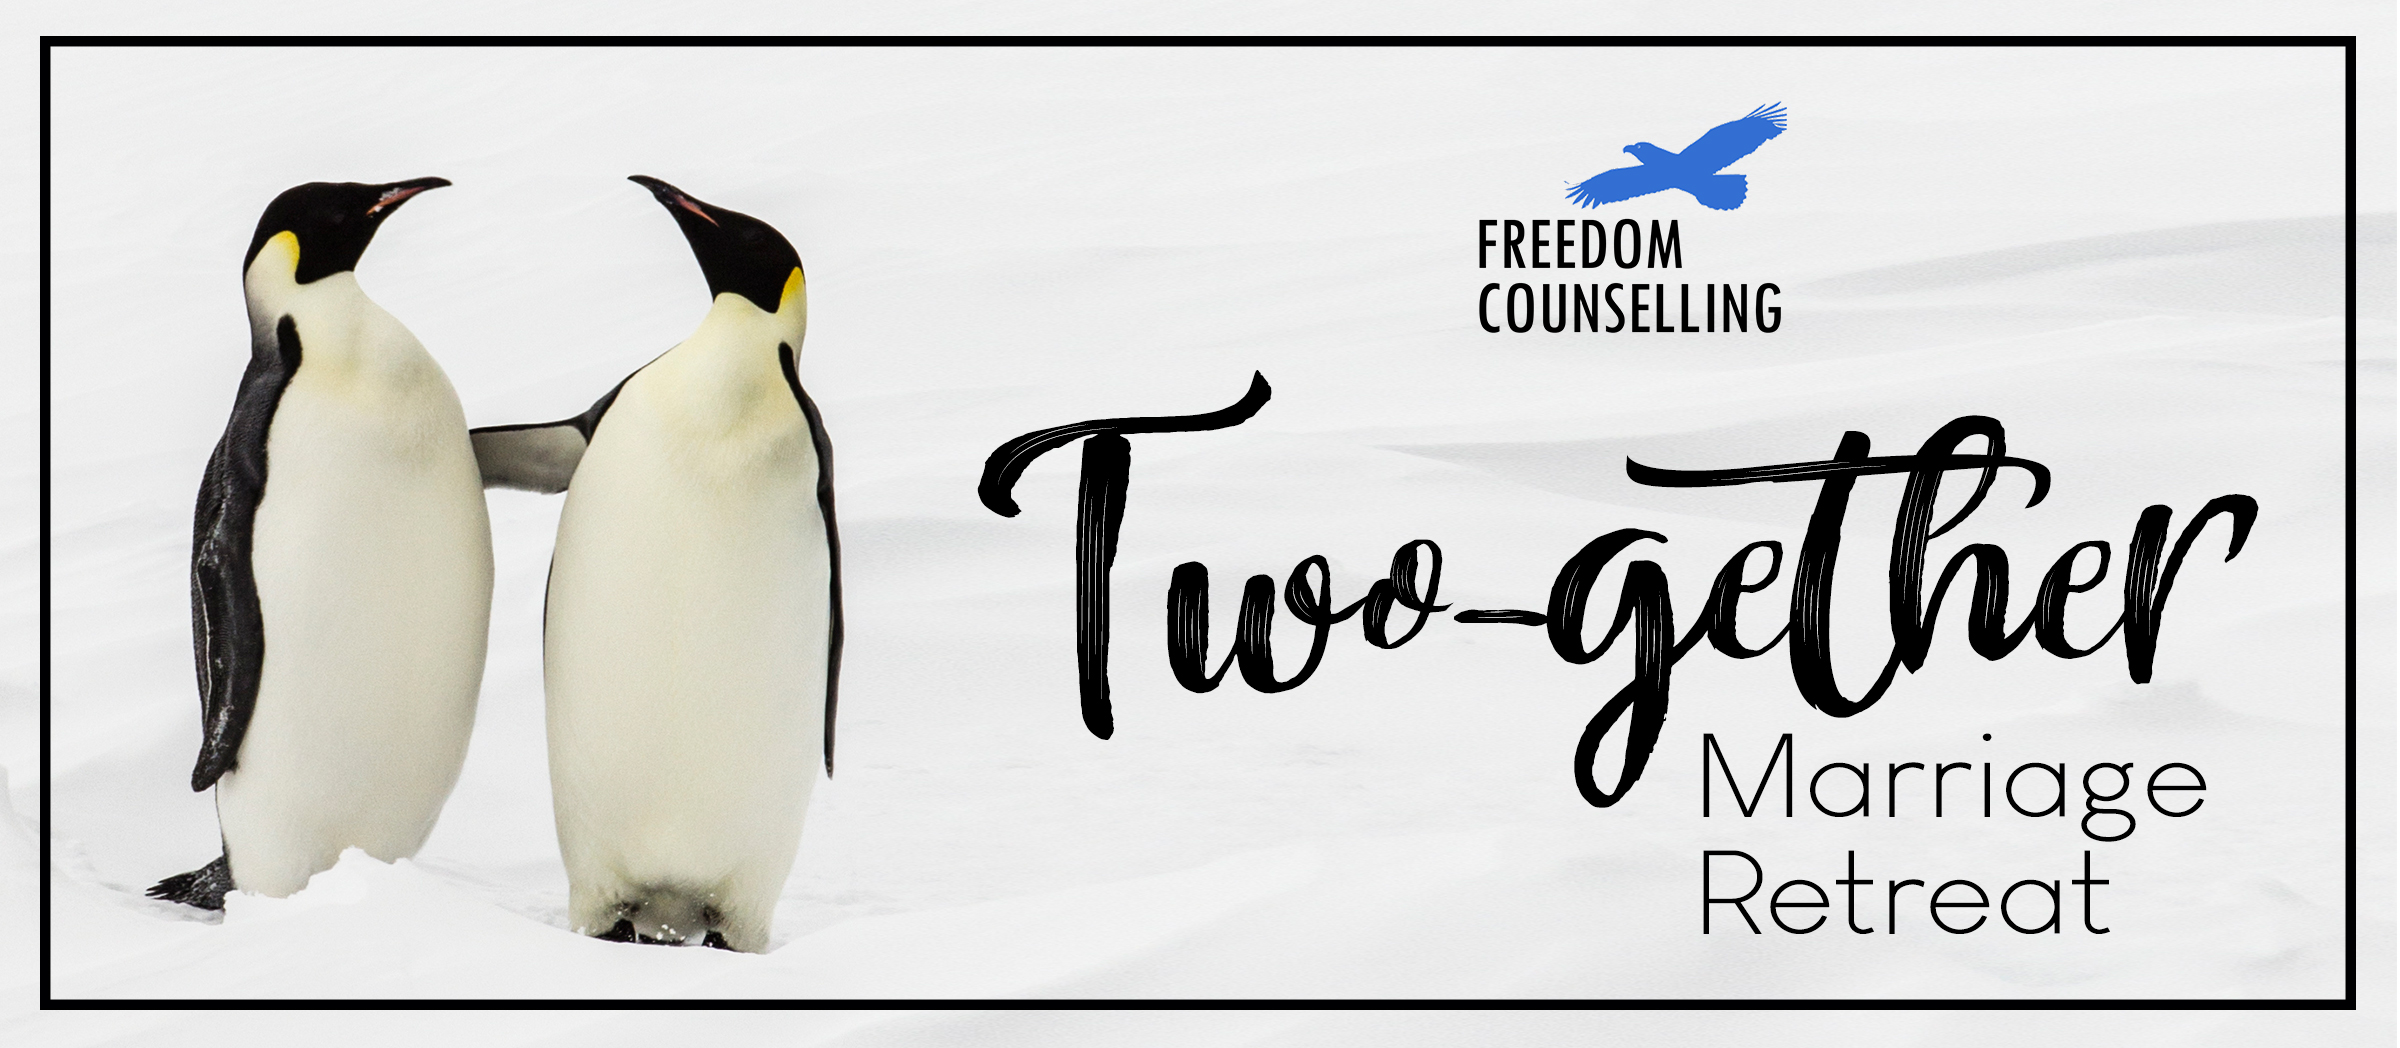 Freedom Counselling, Kelowna, Vernon, Counselling, Marriage Counselling